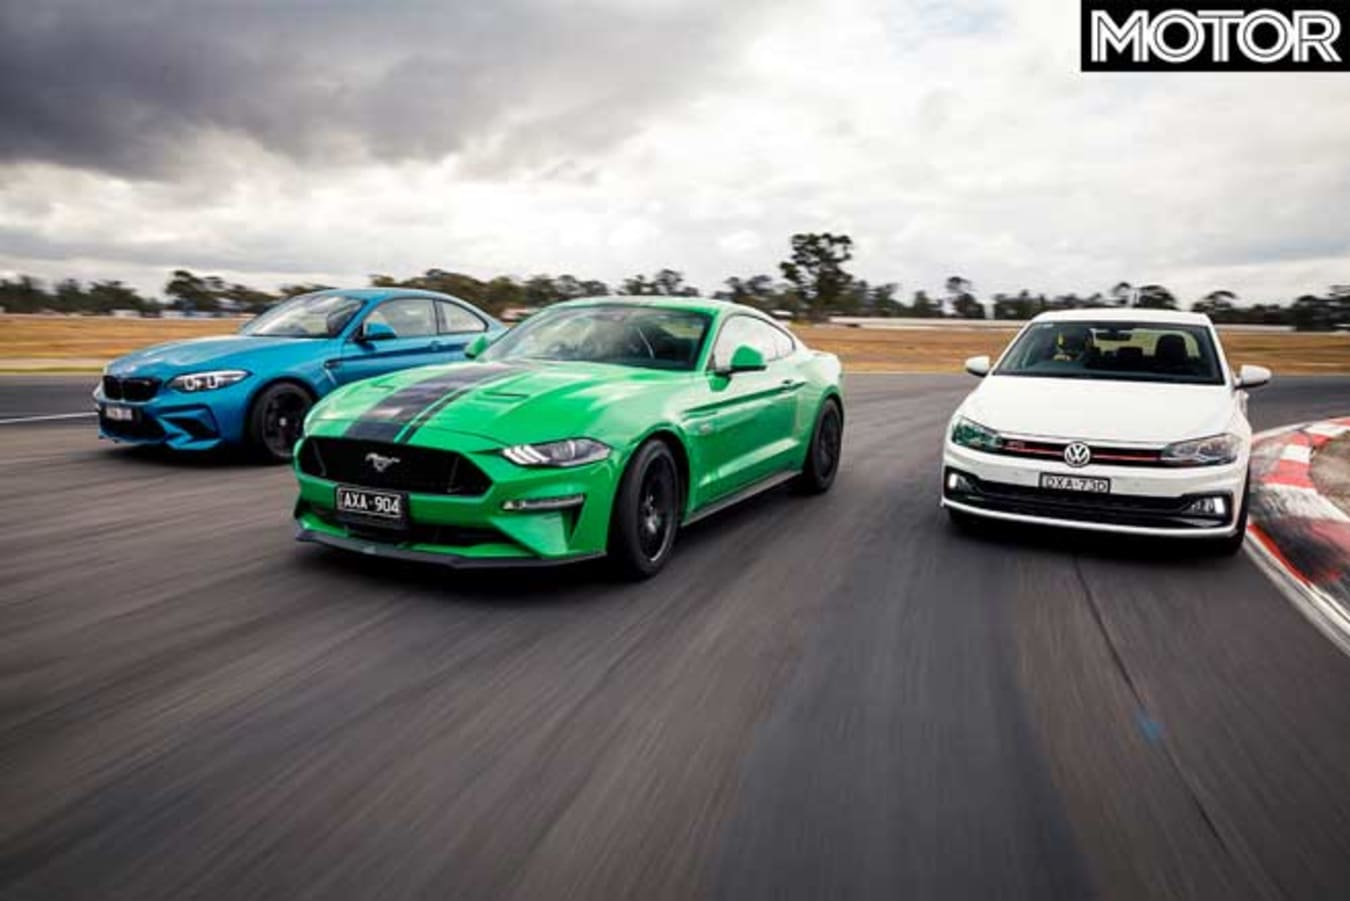 MOTOR Magazine July 2019 Issue Bang For Your Bucks Preview Jpg